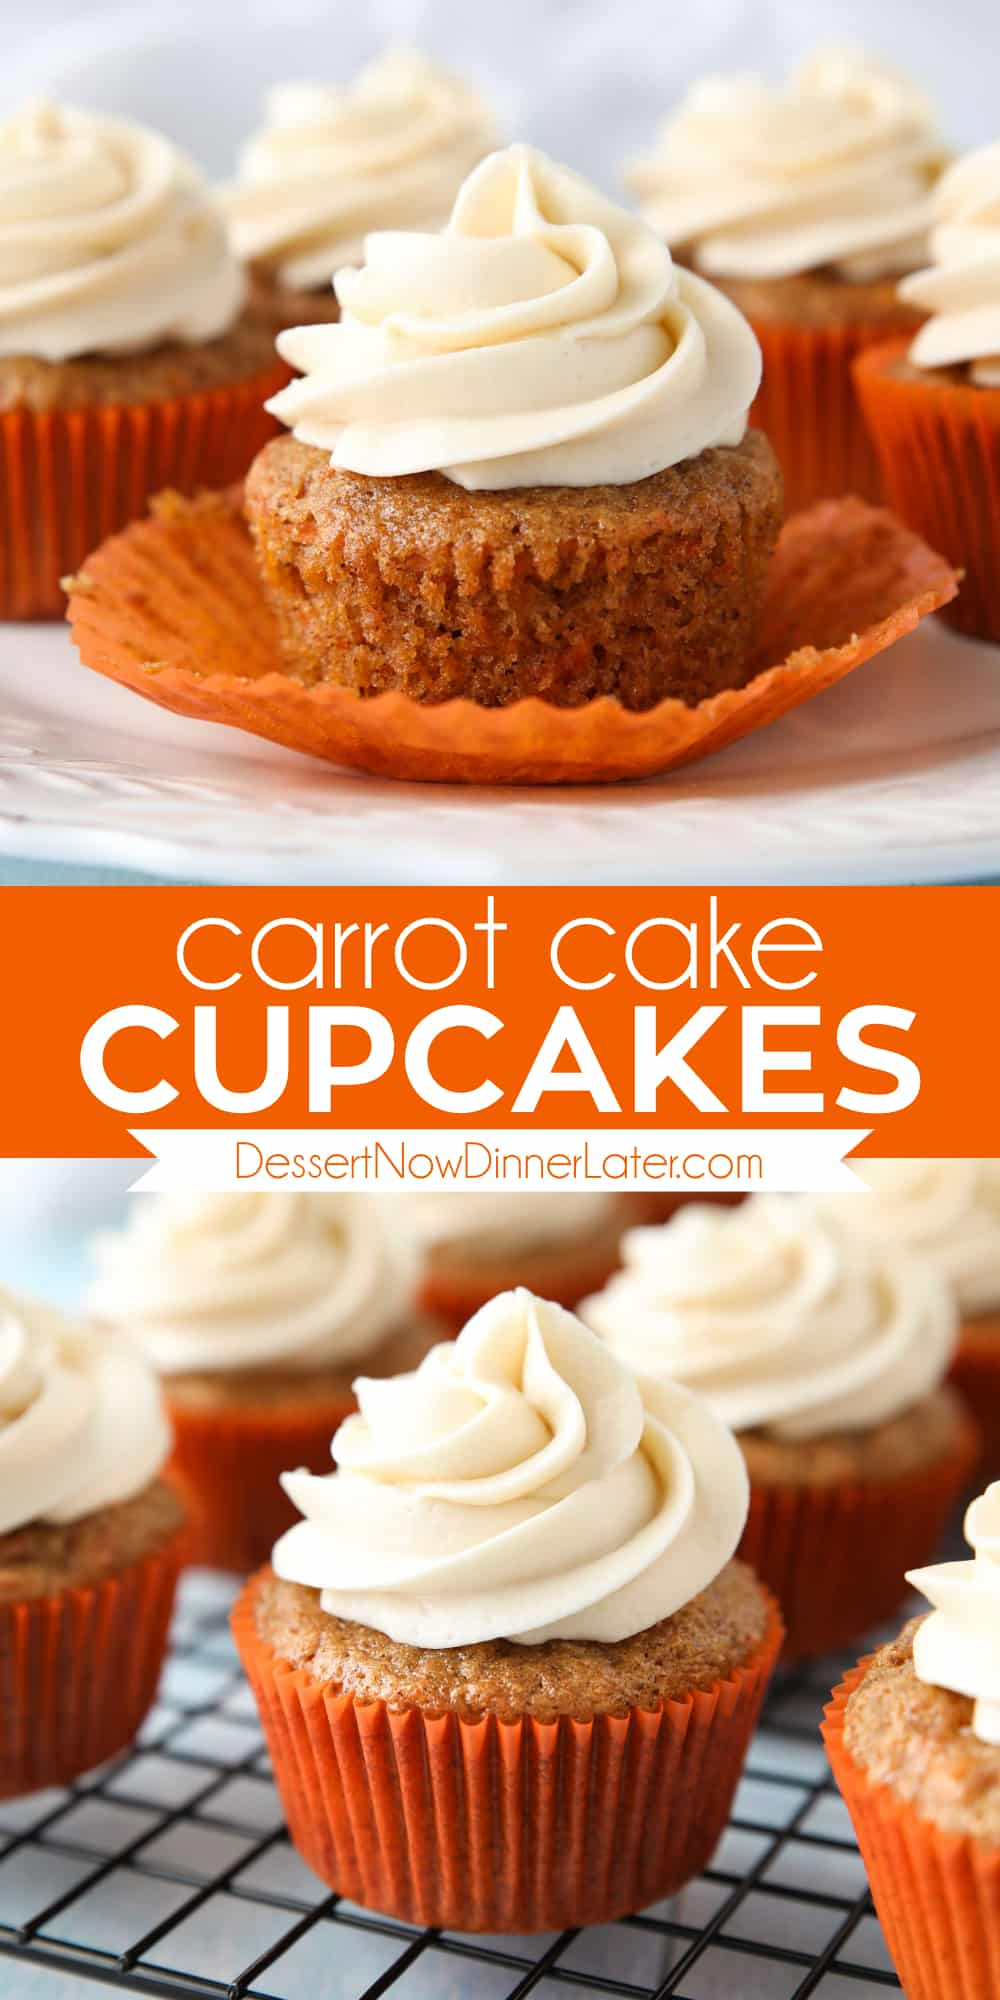 Pinterest collage image for Carrot Cake Cupcakes with two images and text in the center.